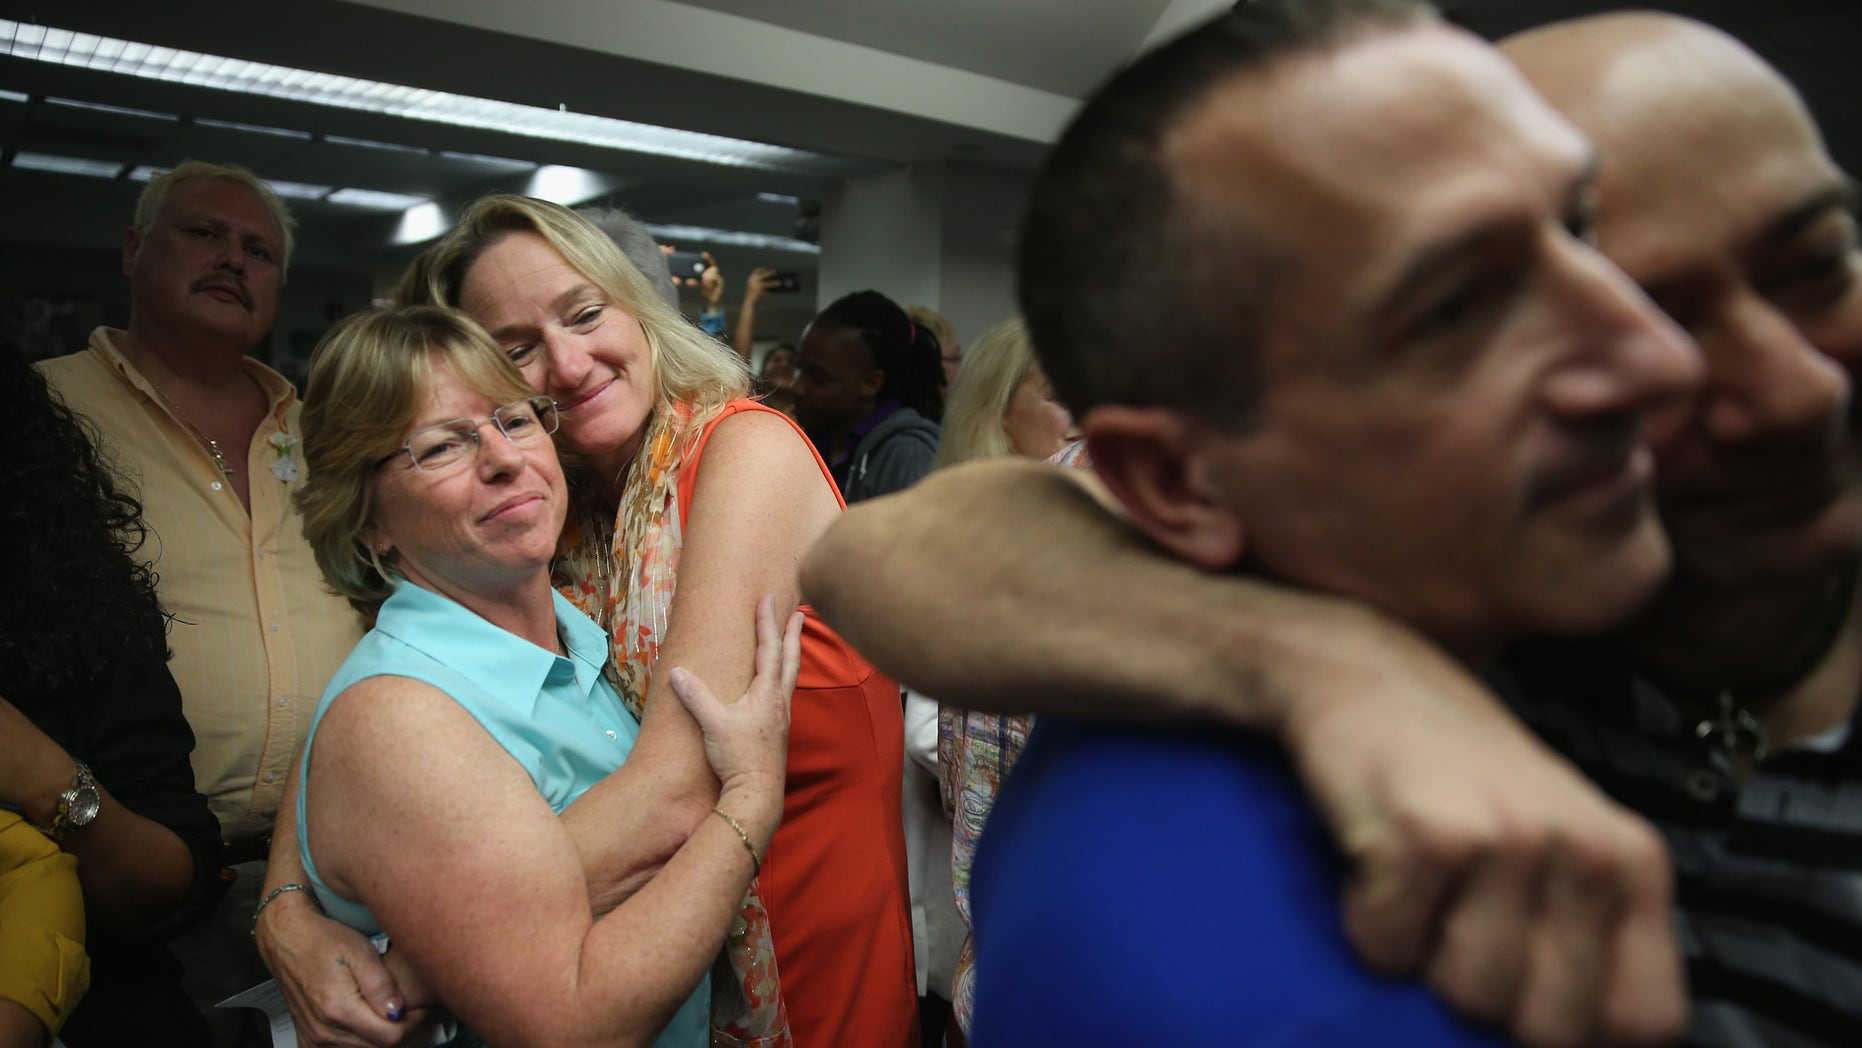 FORT LAUDERDALE, FL - JANUARY 06:  Couples embrace as they attend a wedding ceremony at the Broward County Courthouse on January 6, 2015 in Fort Lauderdale, Florida. Gay marriage is now legal statewide after the courts ruled that the ban on gay marriage is unconstitutional and the Supreme Court declined to intervene.  (Photo by Joe Raedle/Getty Images)